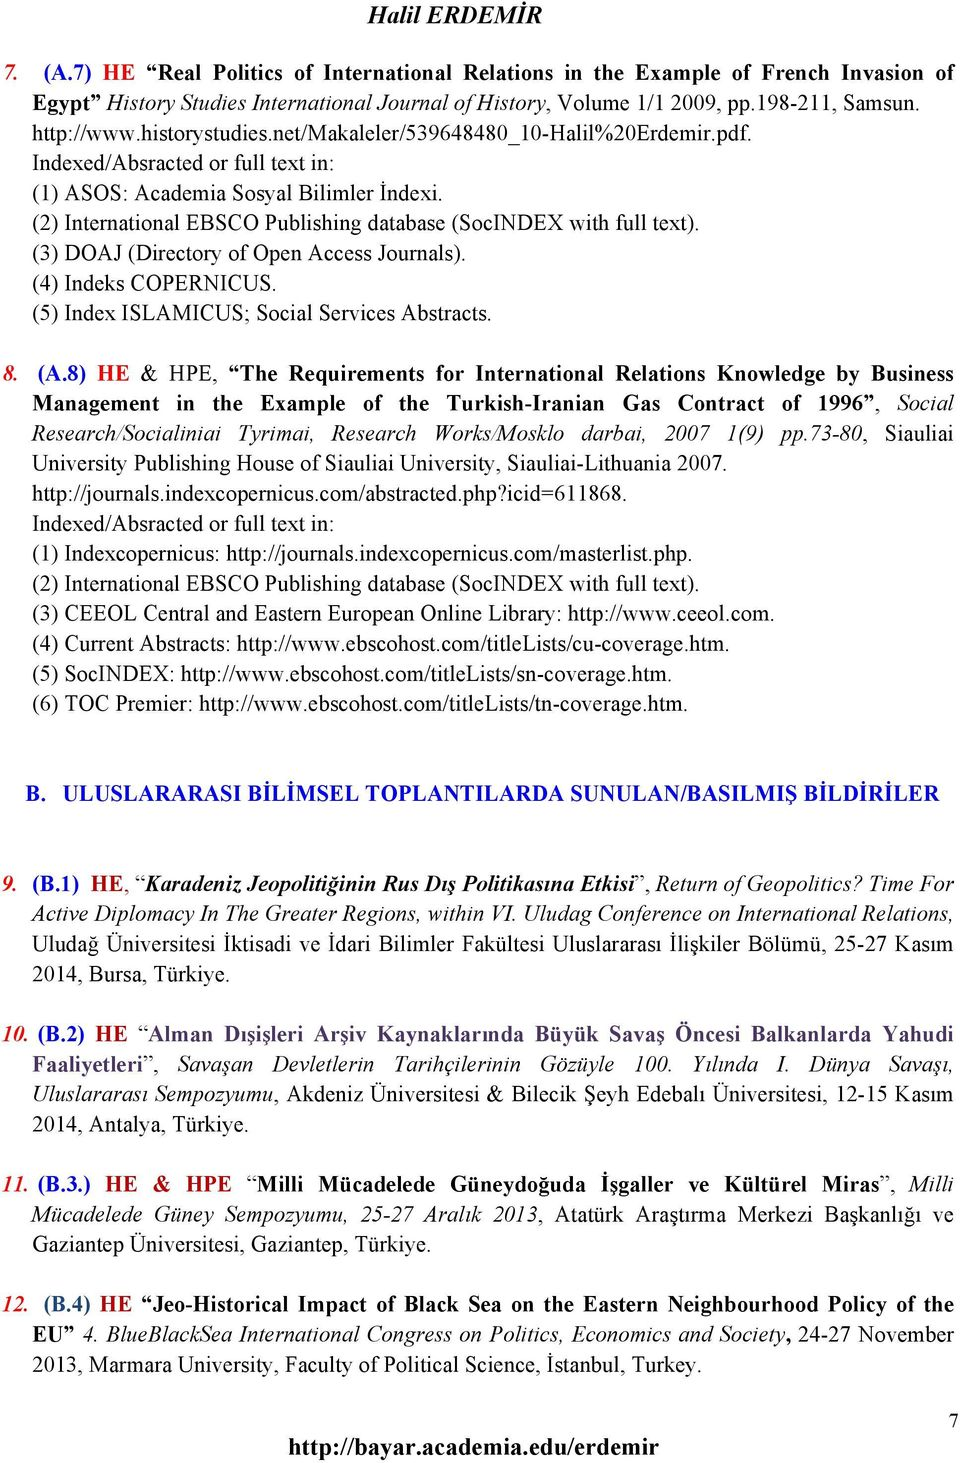 (2) International EBSCO Publishing database (SocINDEX with full text). (3) DOAJ (Directory of Open Access Journals). (4) Indeks COPERNICUS. (5) Index ISLAMICUS; Social Services Abstracts. 8. (A.